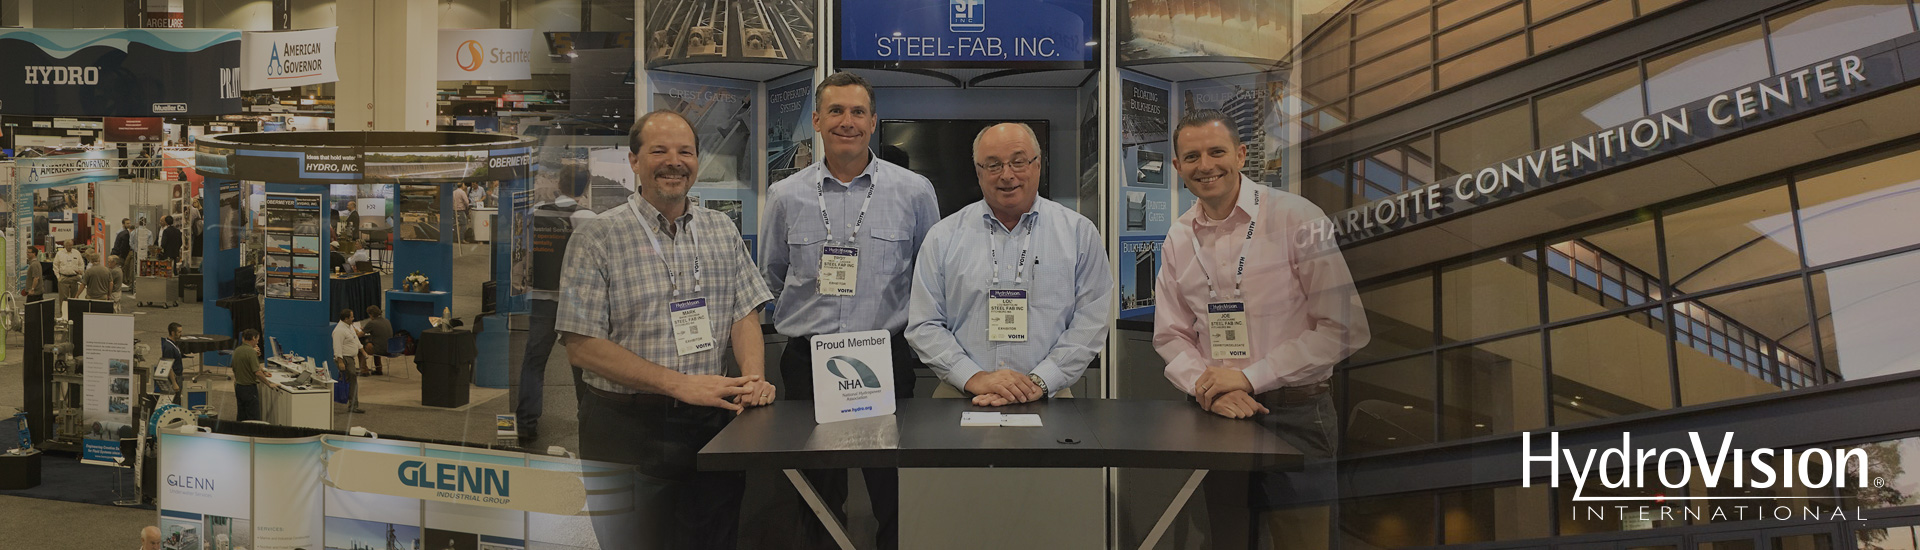 Steel Fab Inc Hydrovision International